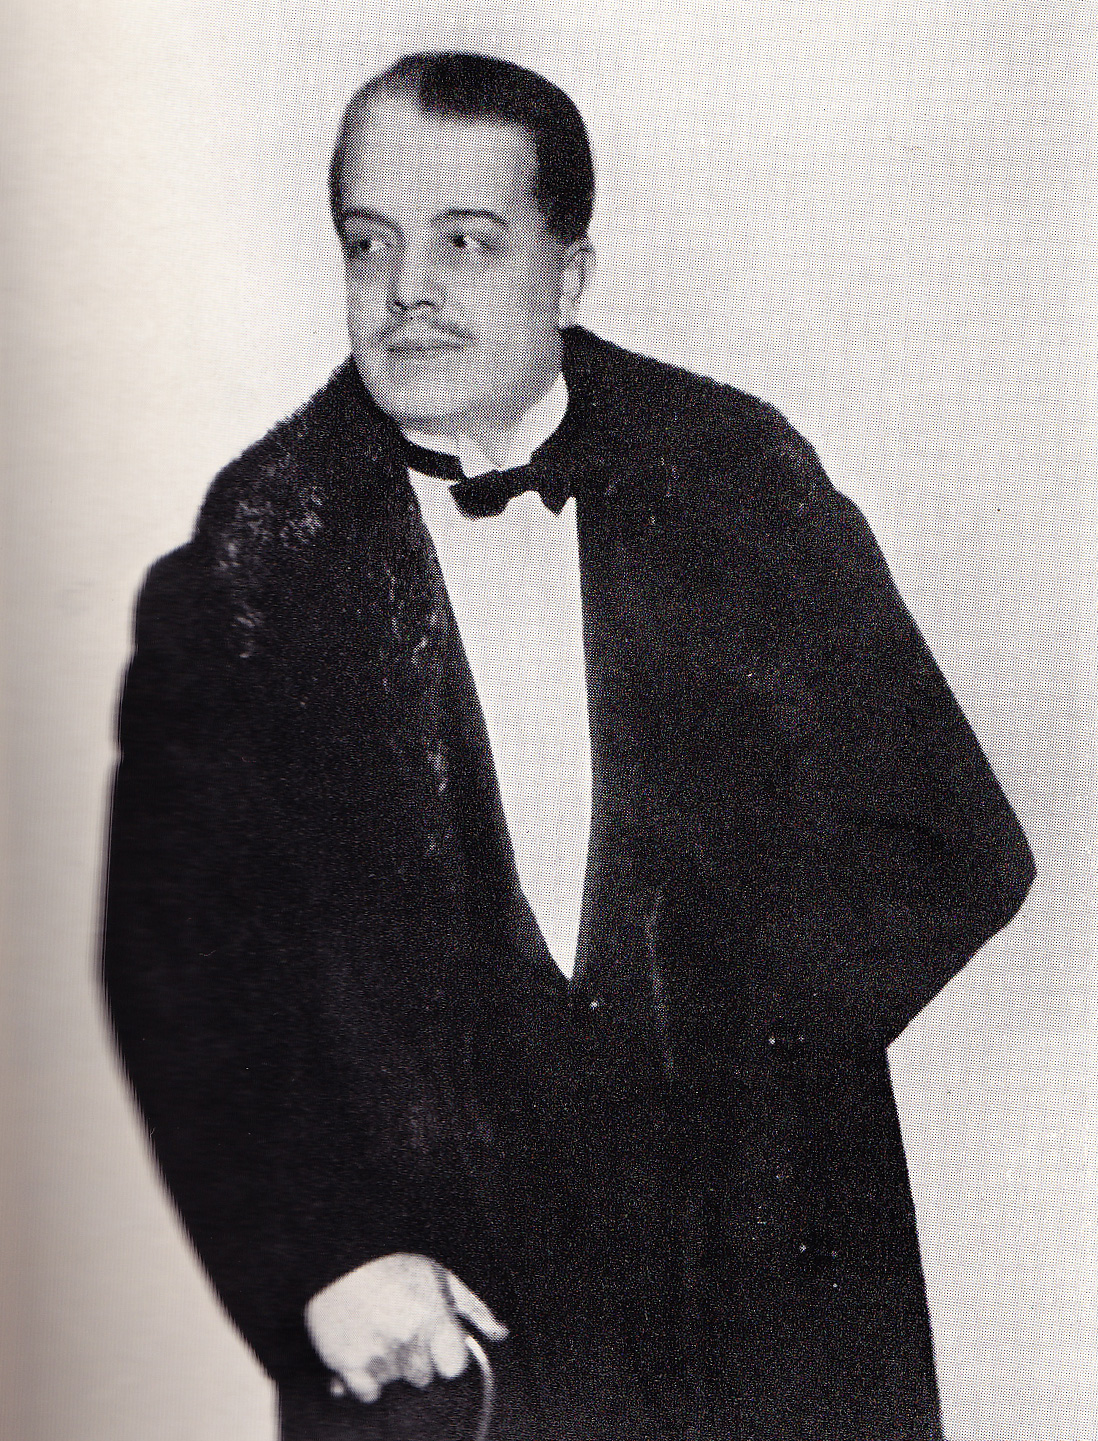 a biography of serge diaghilev Serge diaghilev serge diaghilev was born in 1872 in the province of novgorod, russia, and spent much of his childhood in perm, a small city near the northern ural mountains.